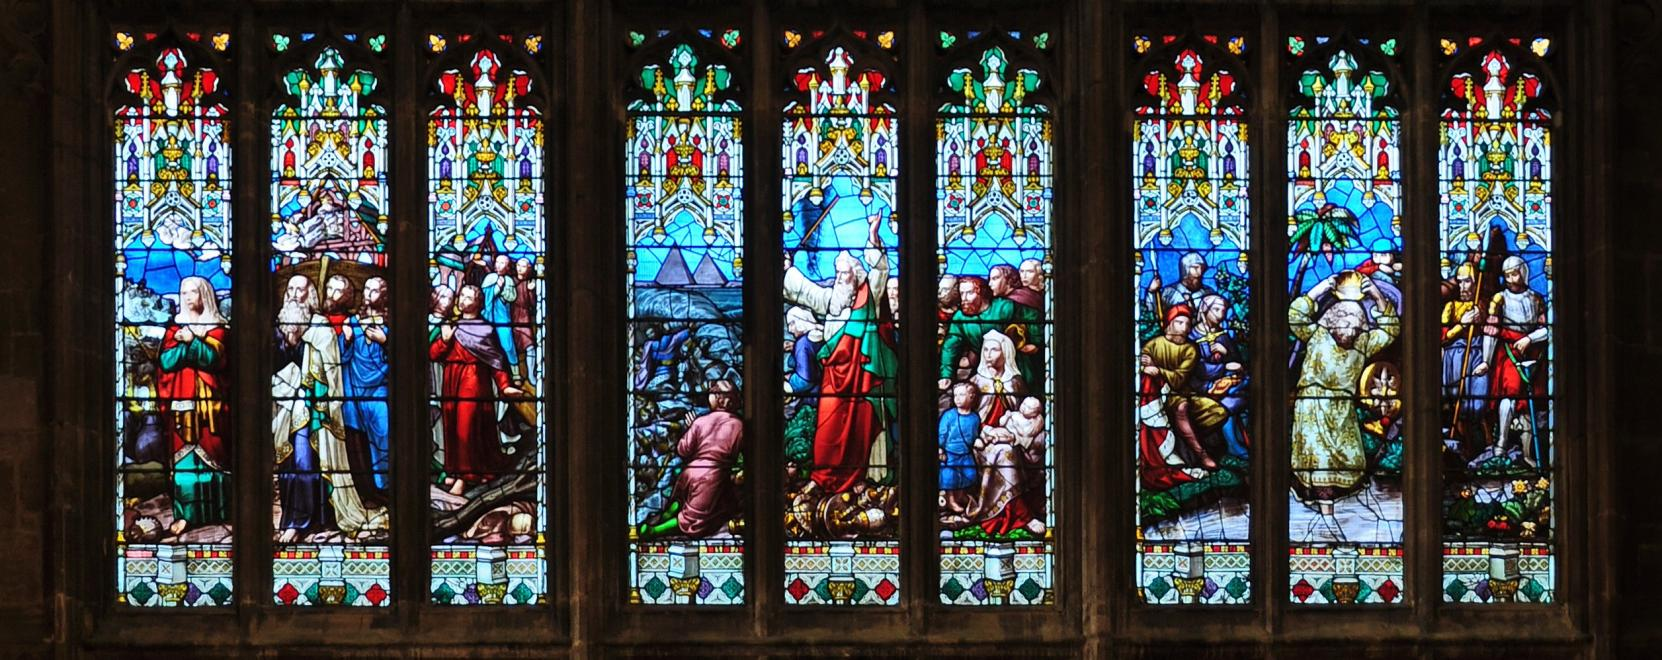 Detail from the west window at Gloucester Cathedral